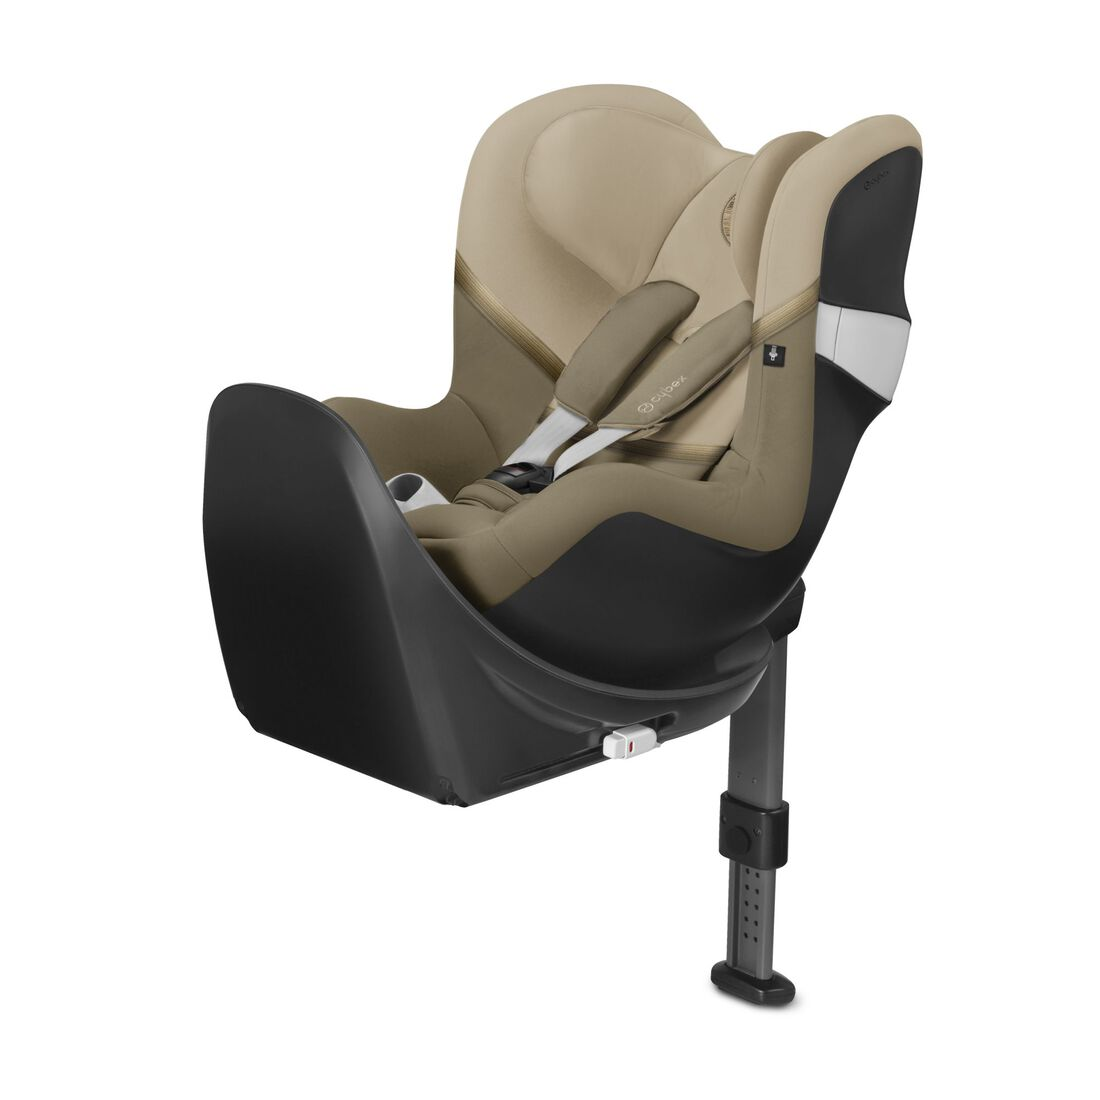 CYBEX Sirona M2 i-Size - Classic Beige in Classic Beige large image number 2